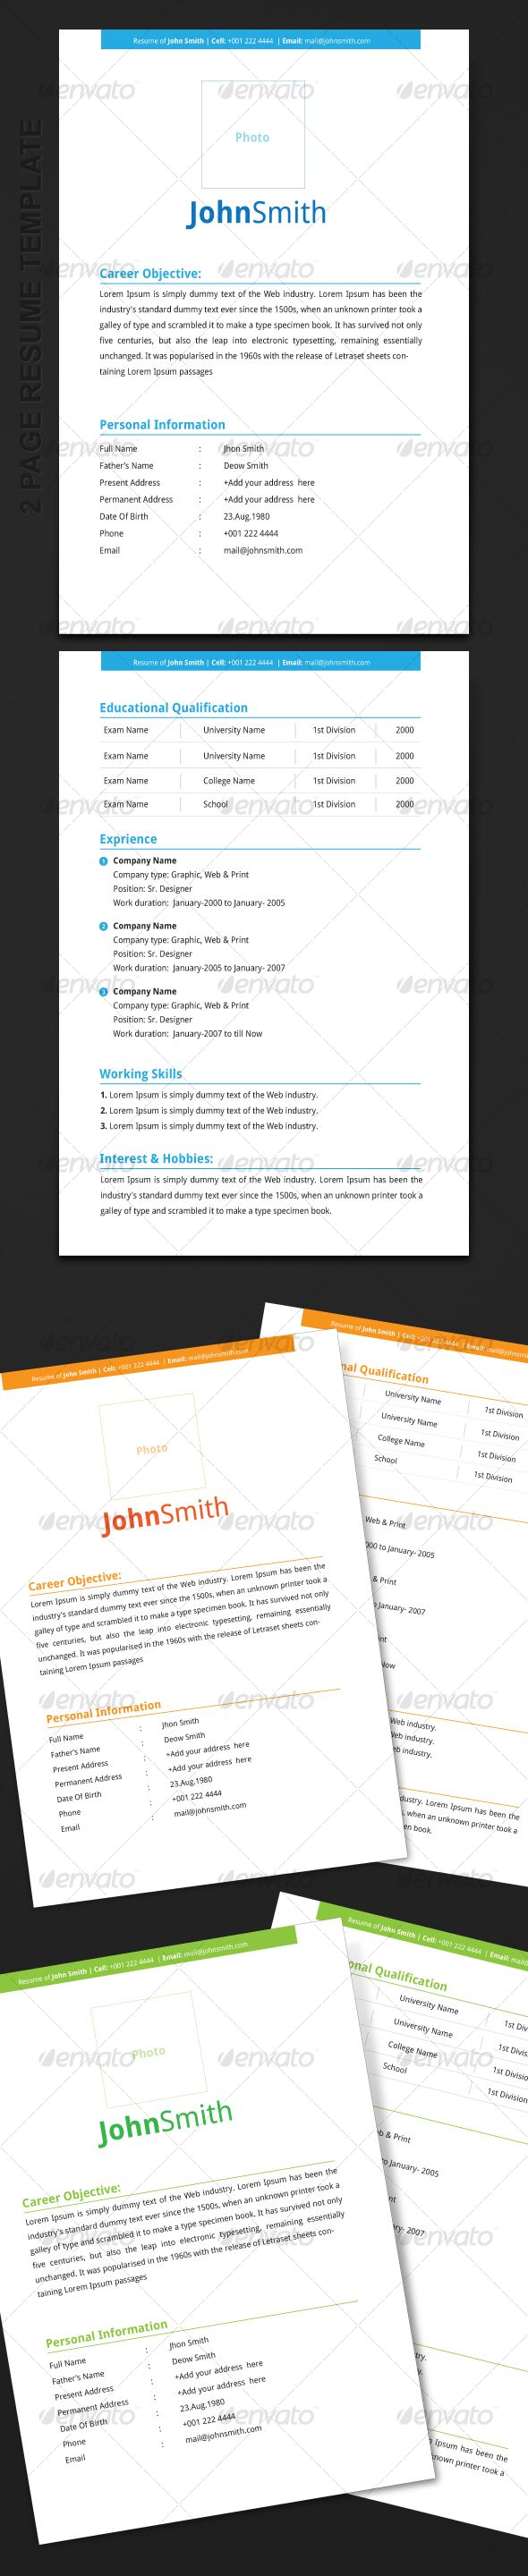 Excellent 1 2 3 Nu Kapitel Resume Tiny 1 Page Resume Sample Flat 10 Envelope Template Illustrator 10 Hour Schedule Templates Young 10 Steps To Creating An Effective Resume Yellow10 Window Envelope Template 53 Best Images About You\u0027re Hired! On Pinterest | Project Manager ..